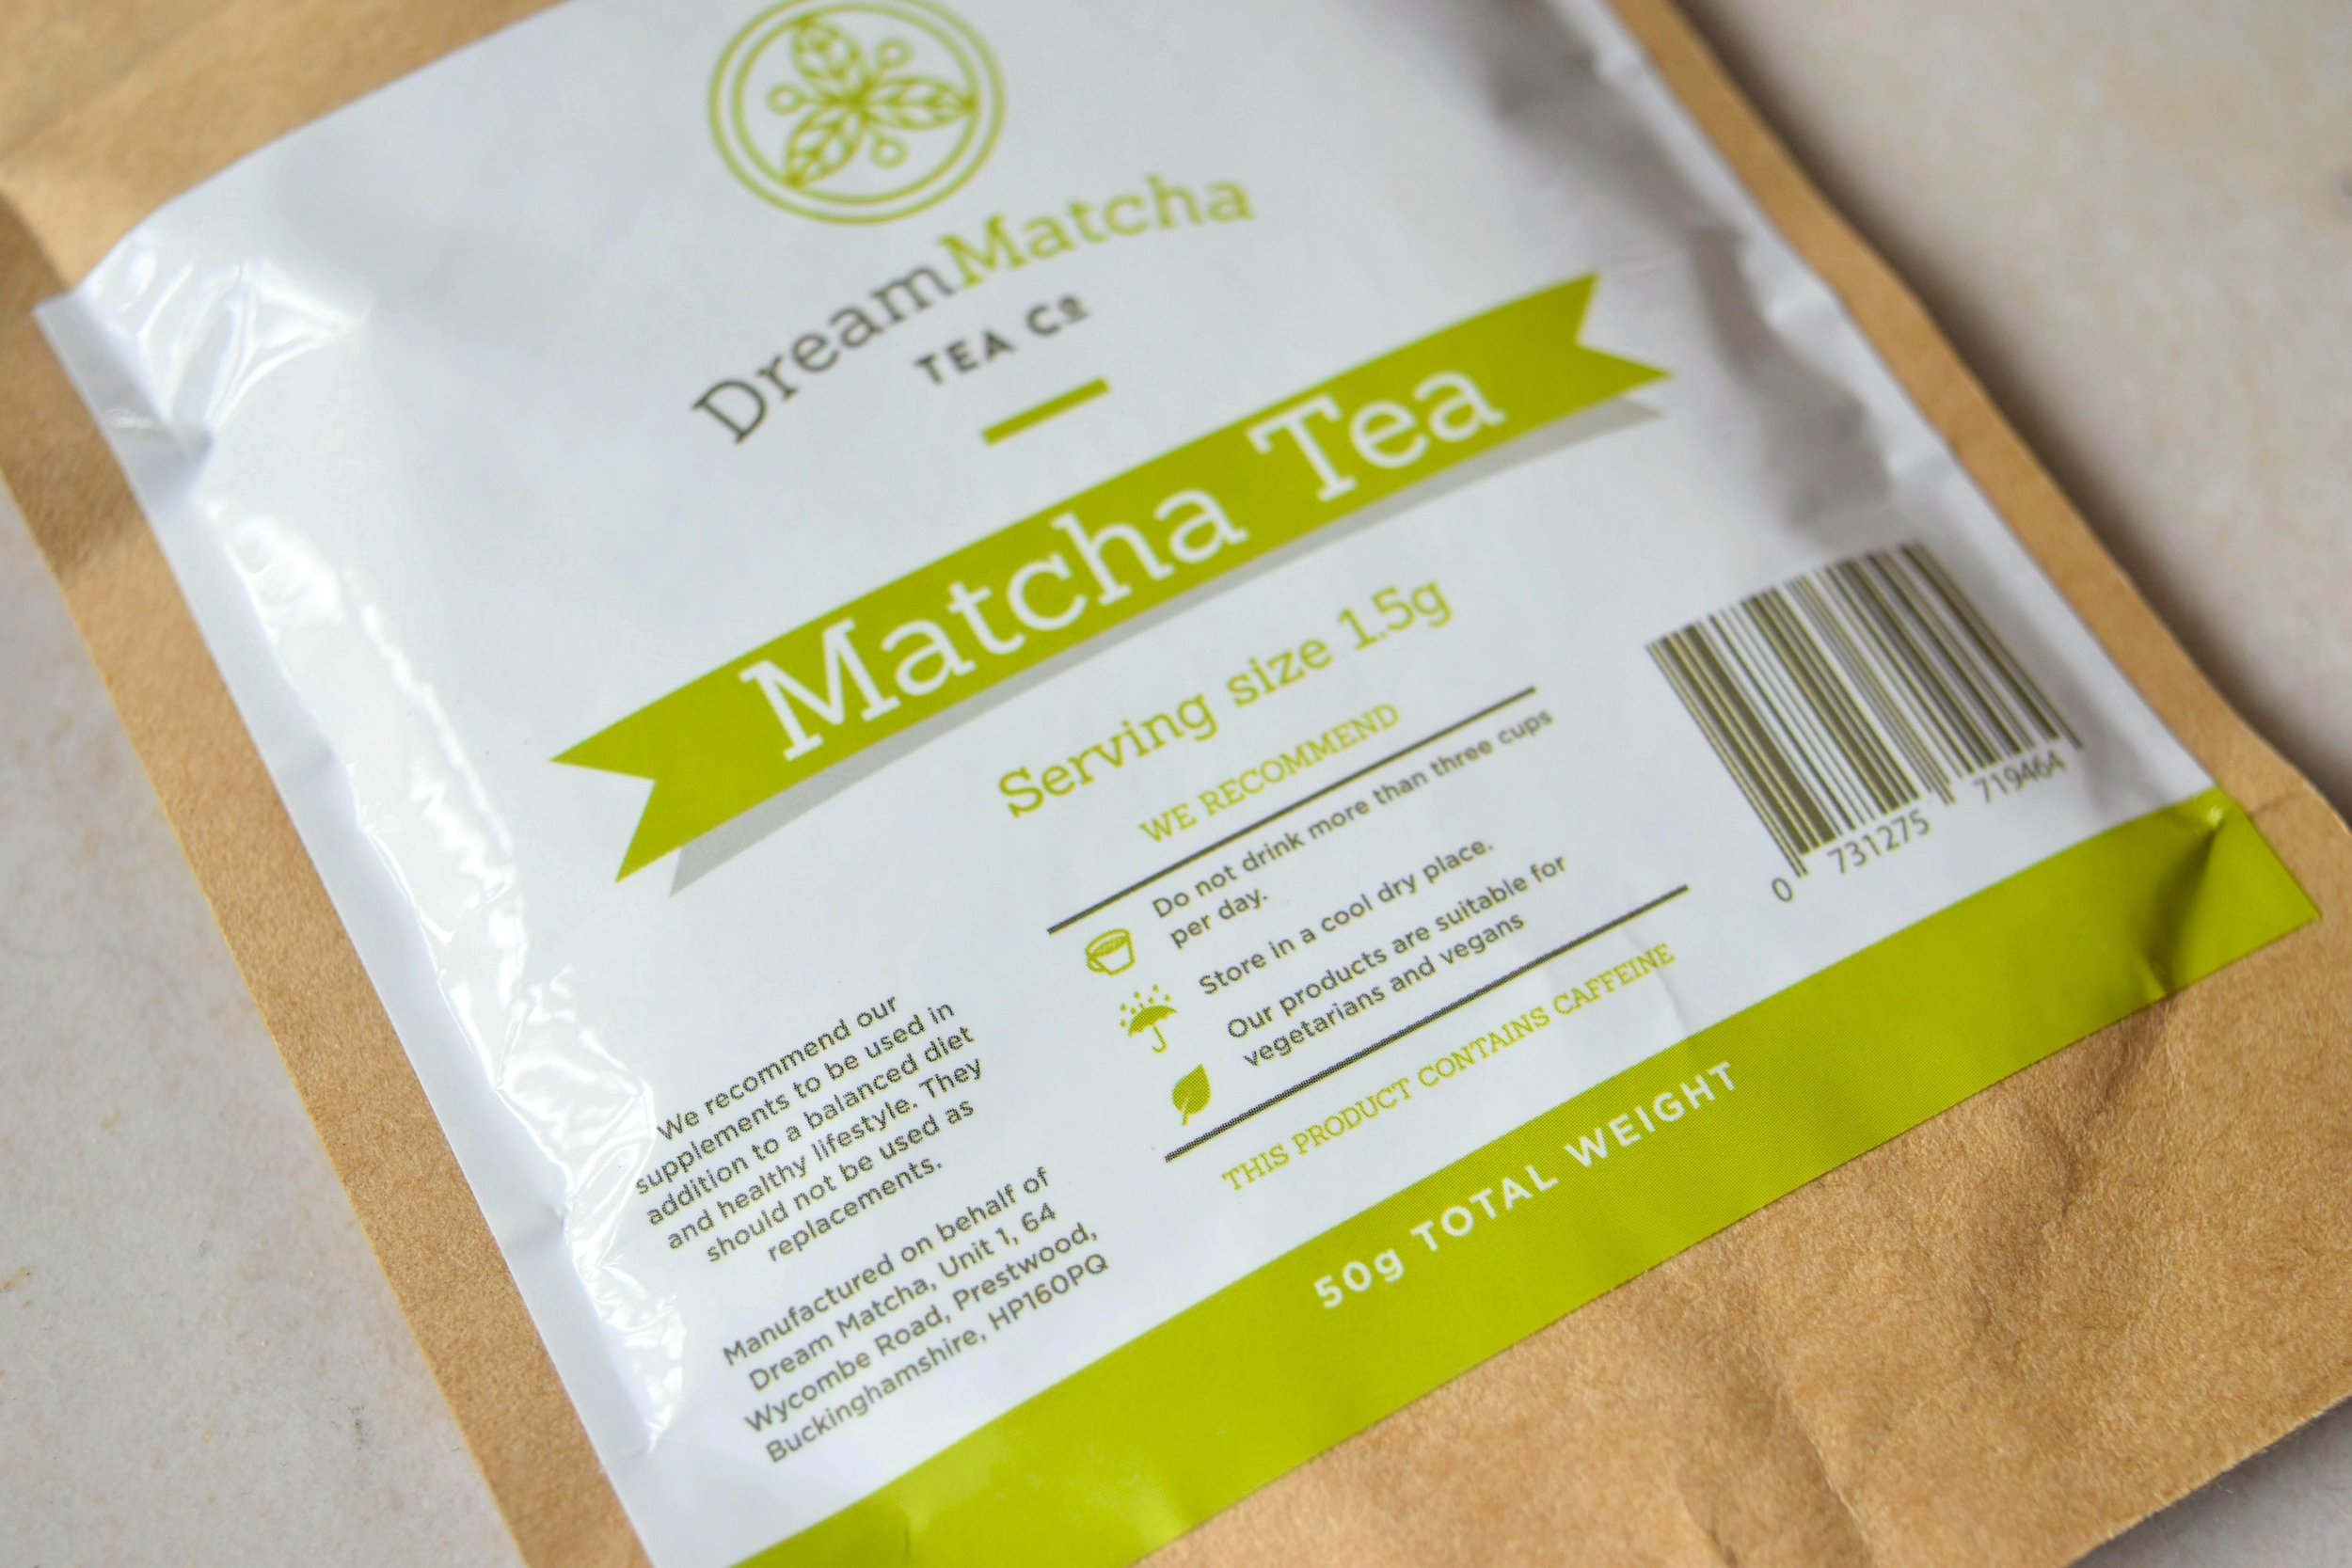 Matcha Tea Review.jpg